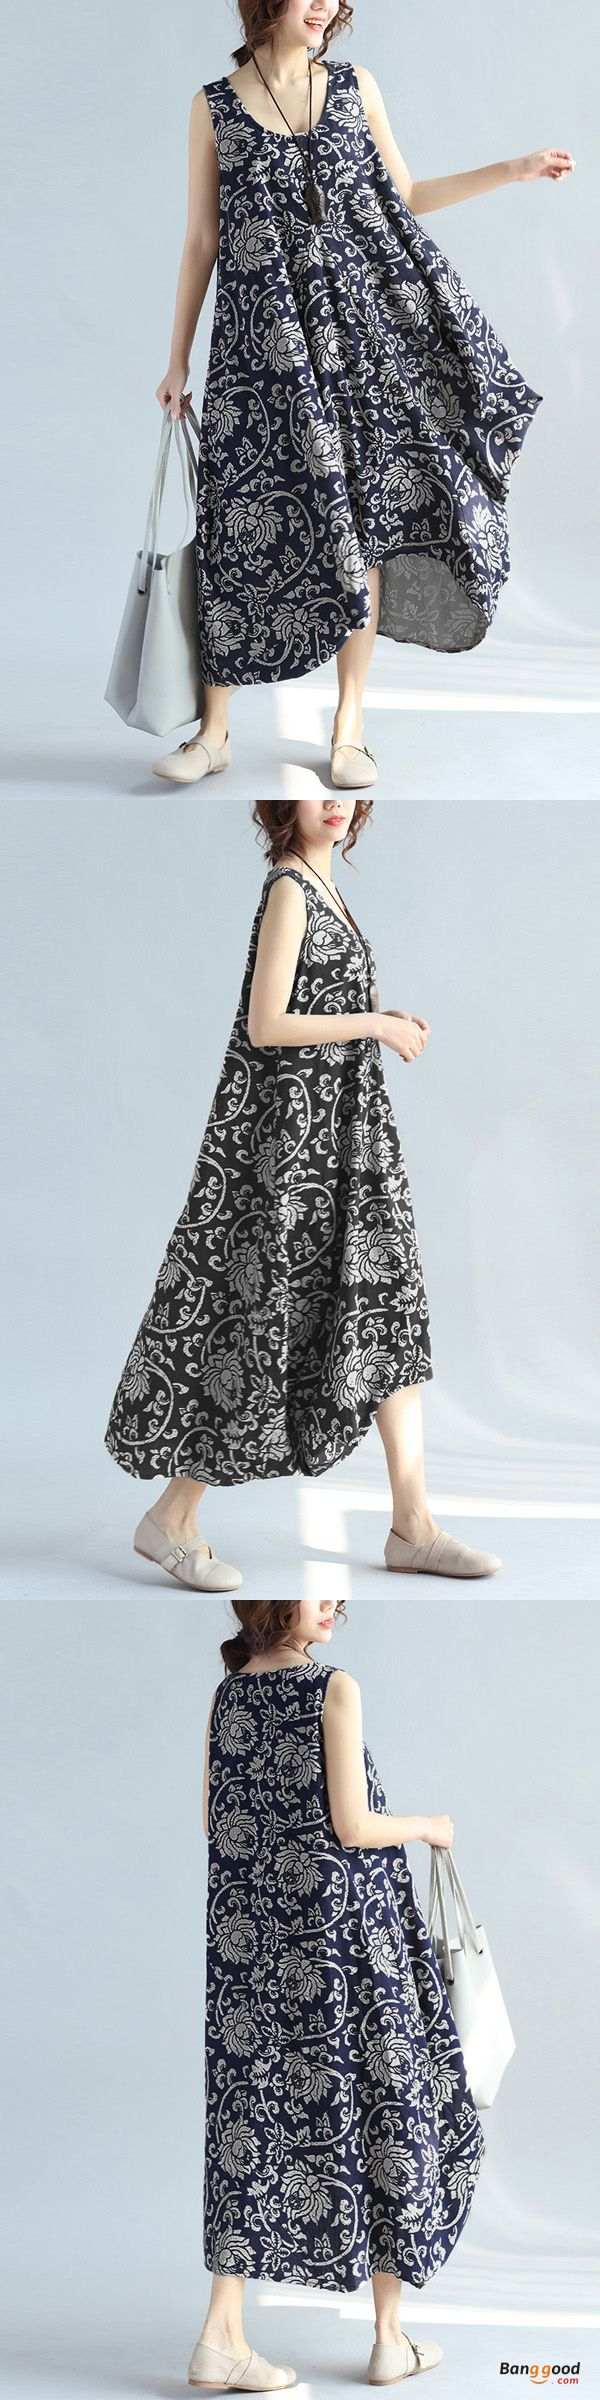 US$17.39+Free shipping. Size: L~5XL. Color: Navy, Black. Home or out, love this vintage and elegant summer dress. Women Dresses, Long Dresses, Dresses Casual, Dresses for Teens, Summer Dresses, Summer Outfits, Retro Fashion.